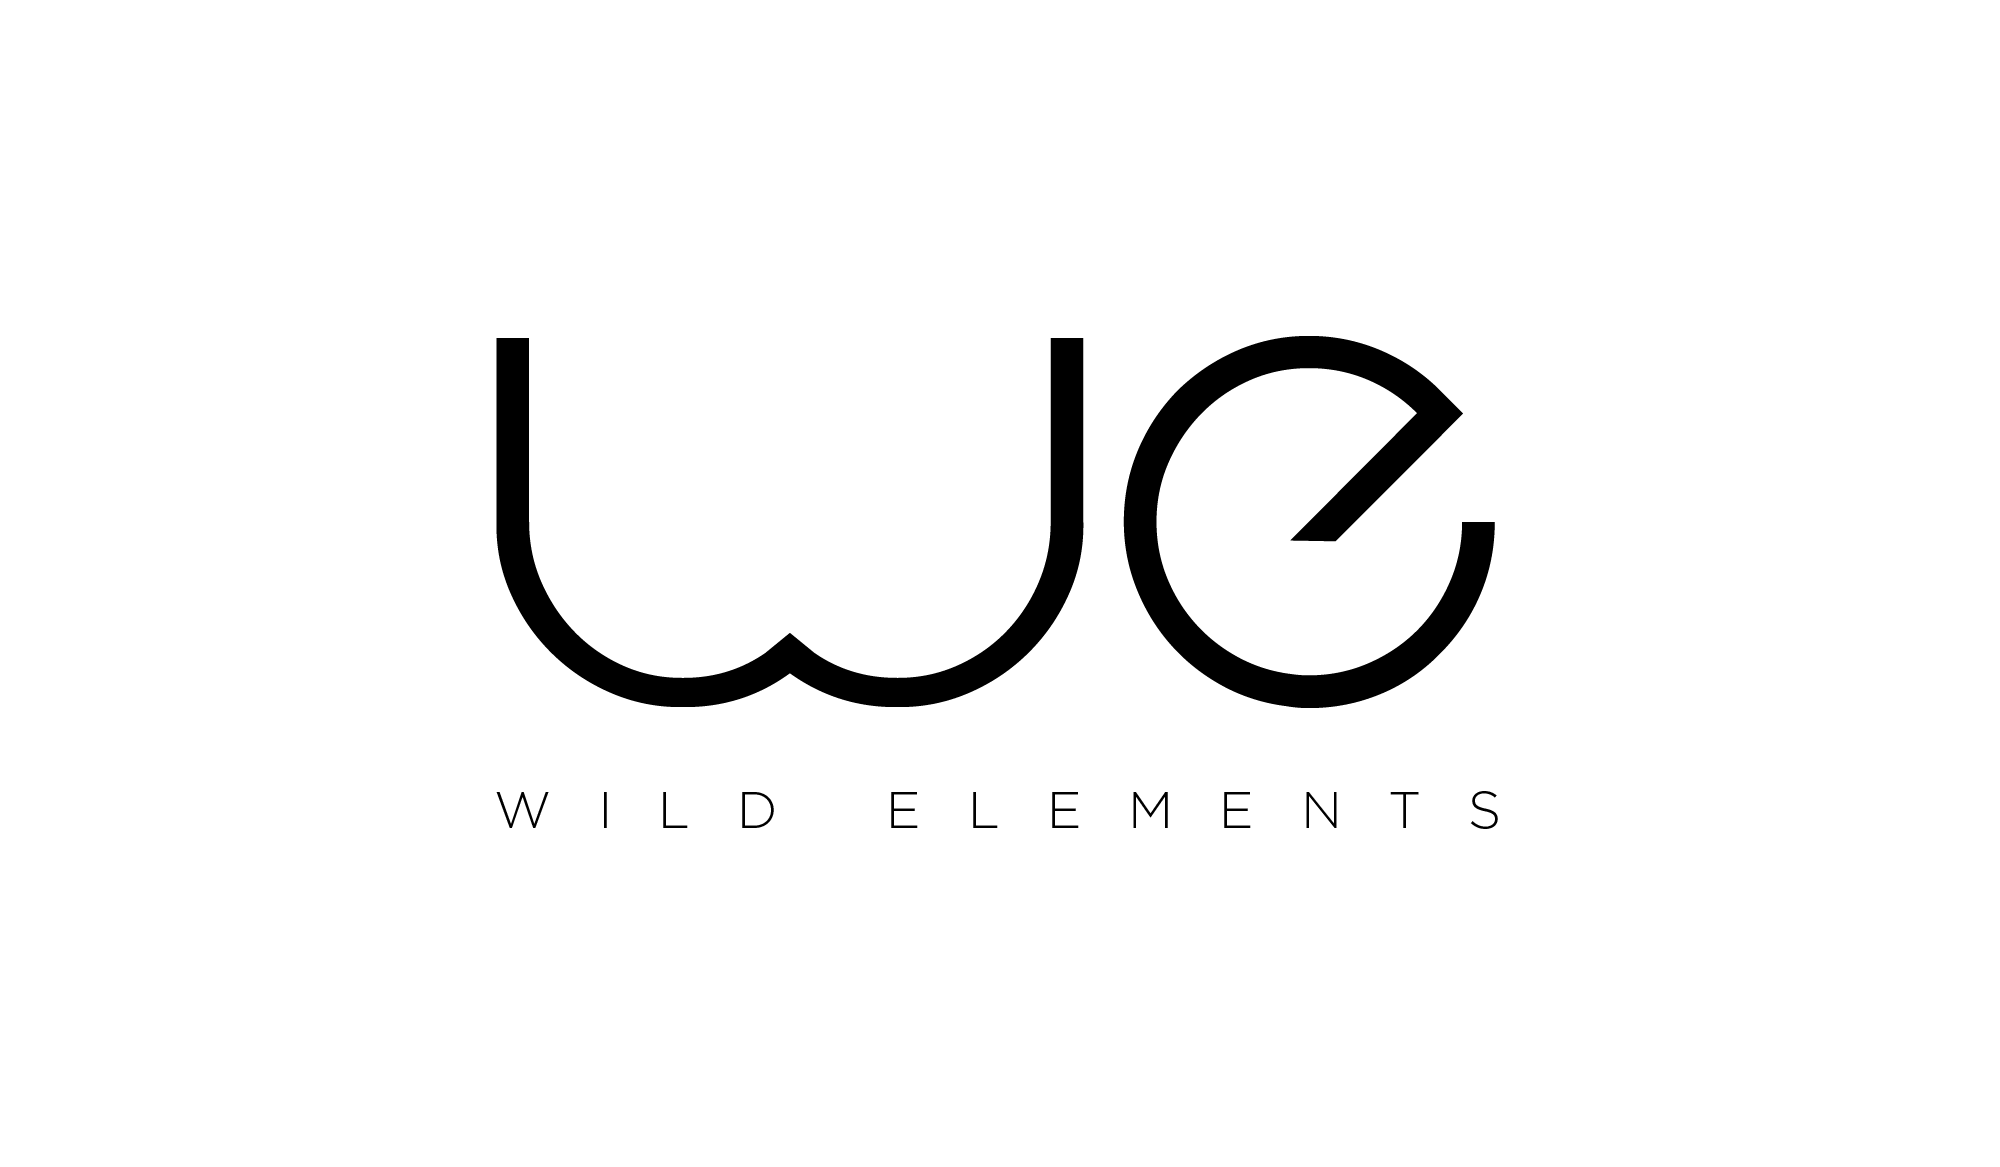 Wildelements